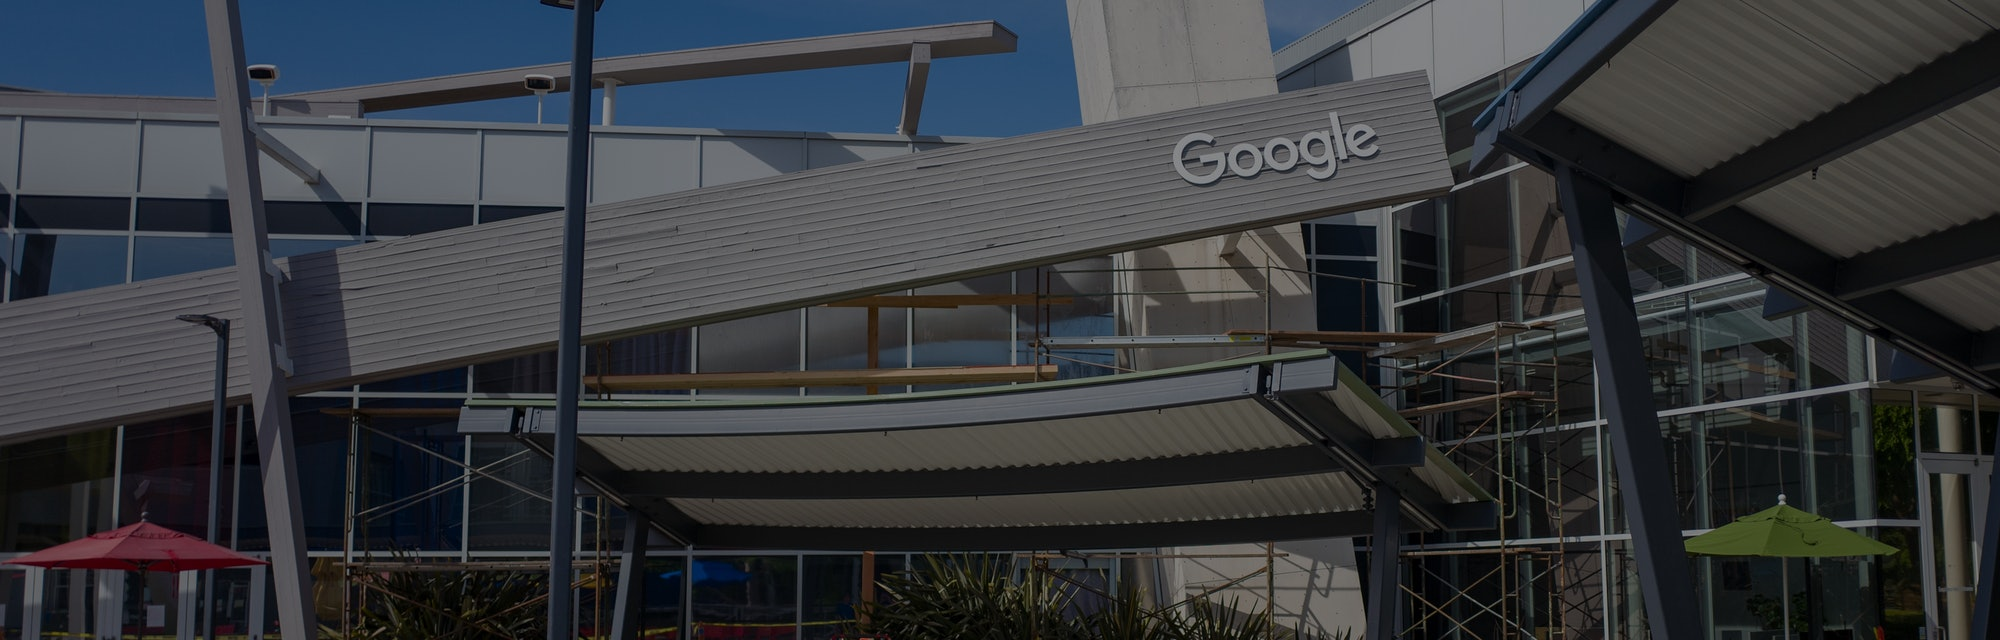 Facade with logo at the Googleplex, headquarters of Google Inc in the Silicon Valley, Mountain View,...